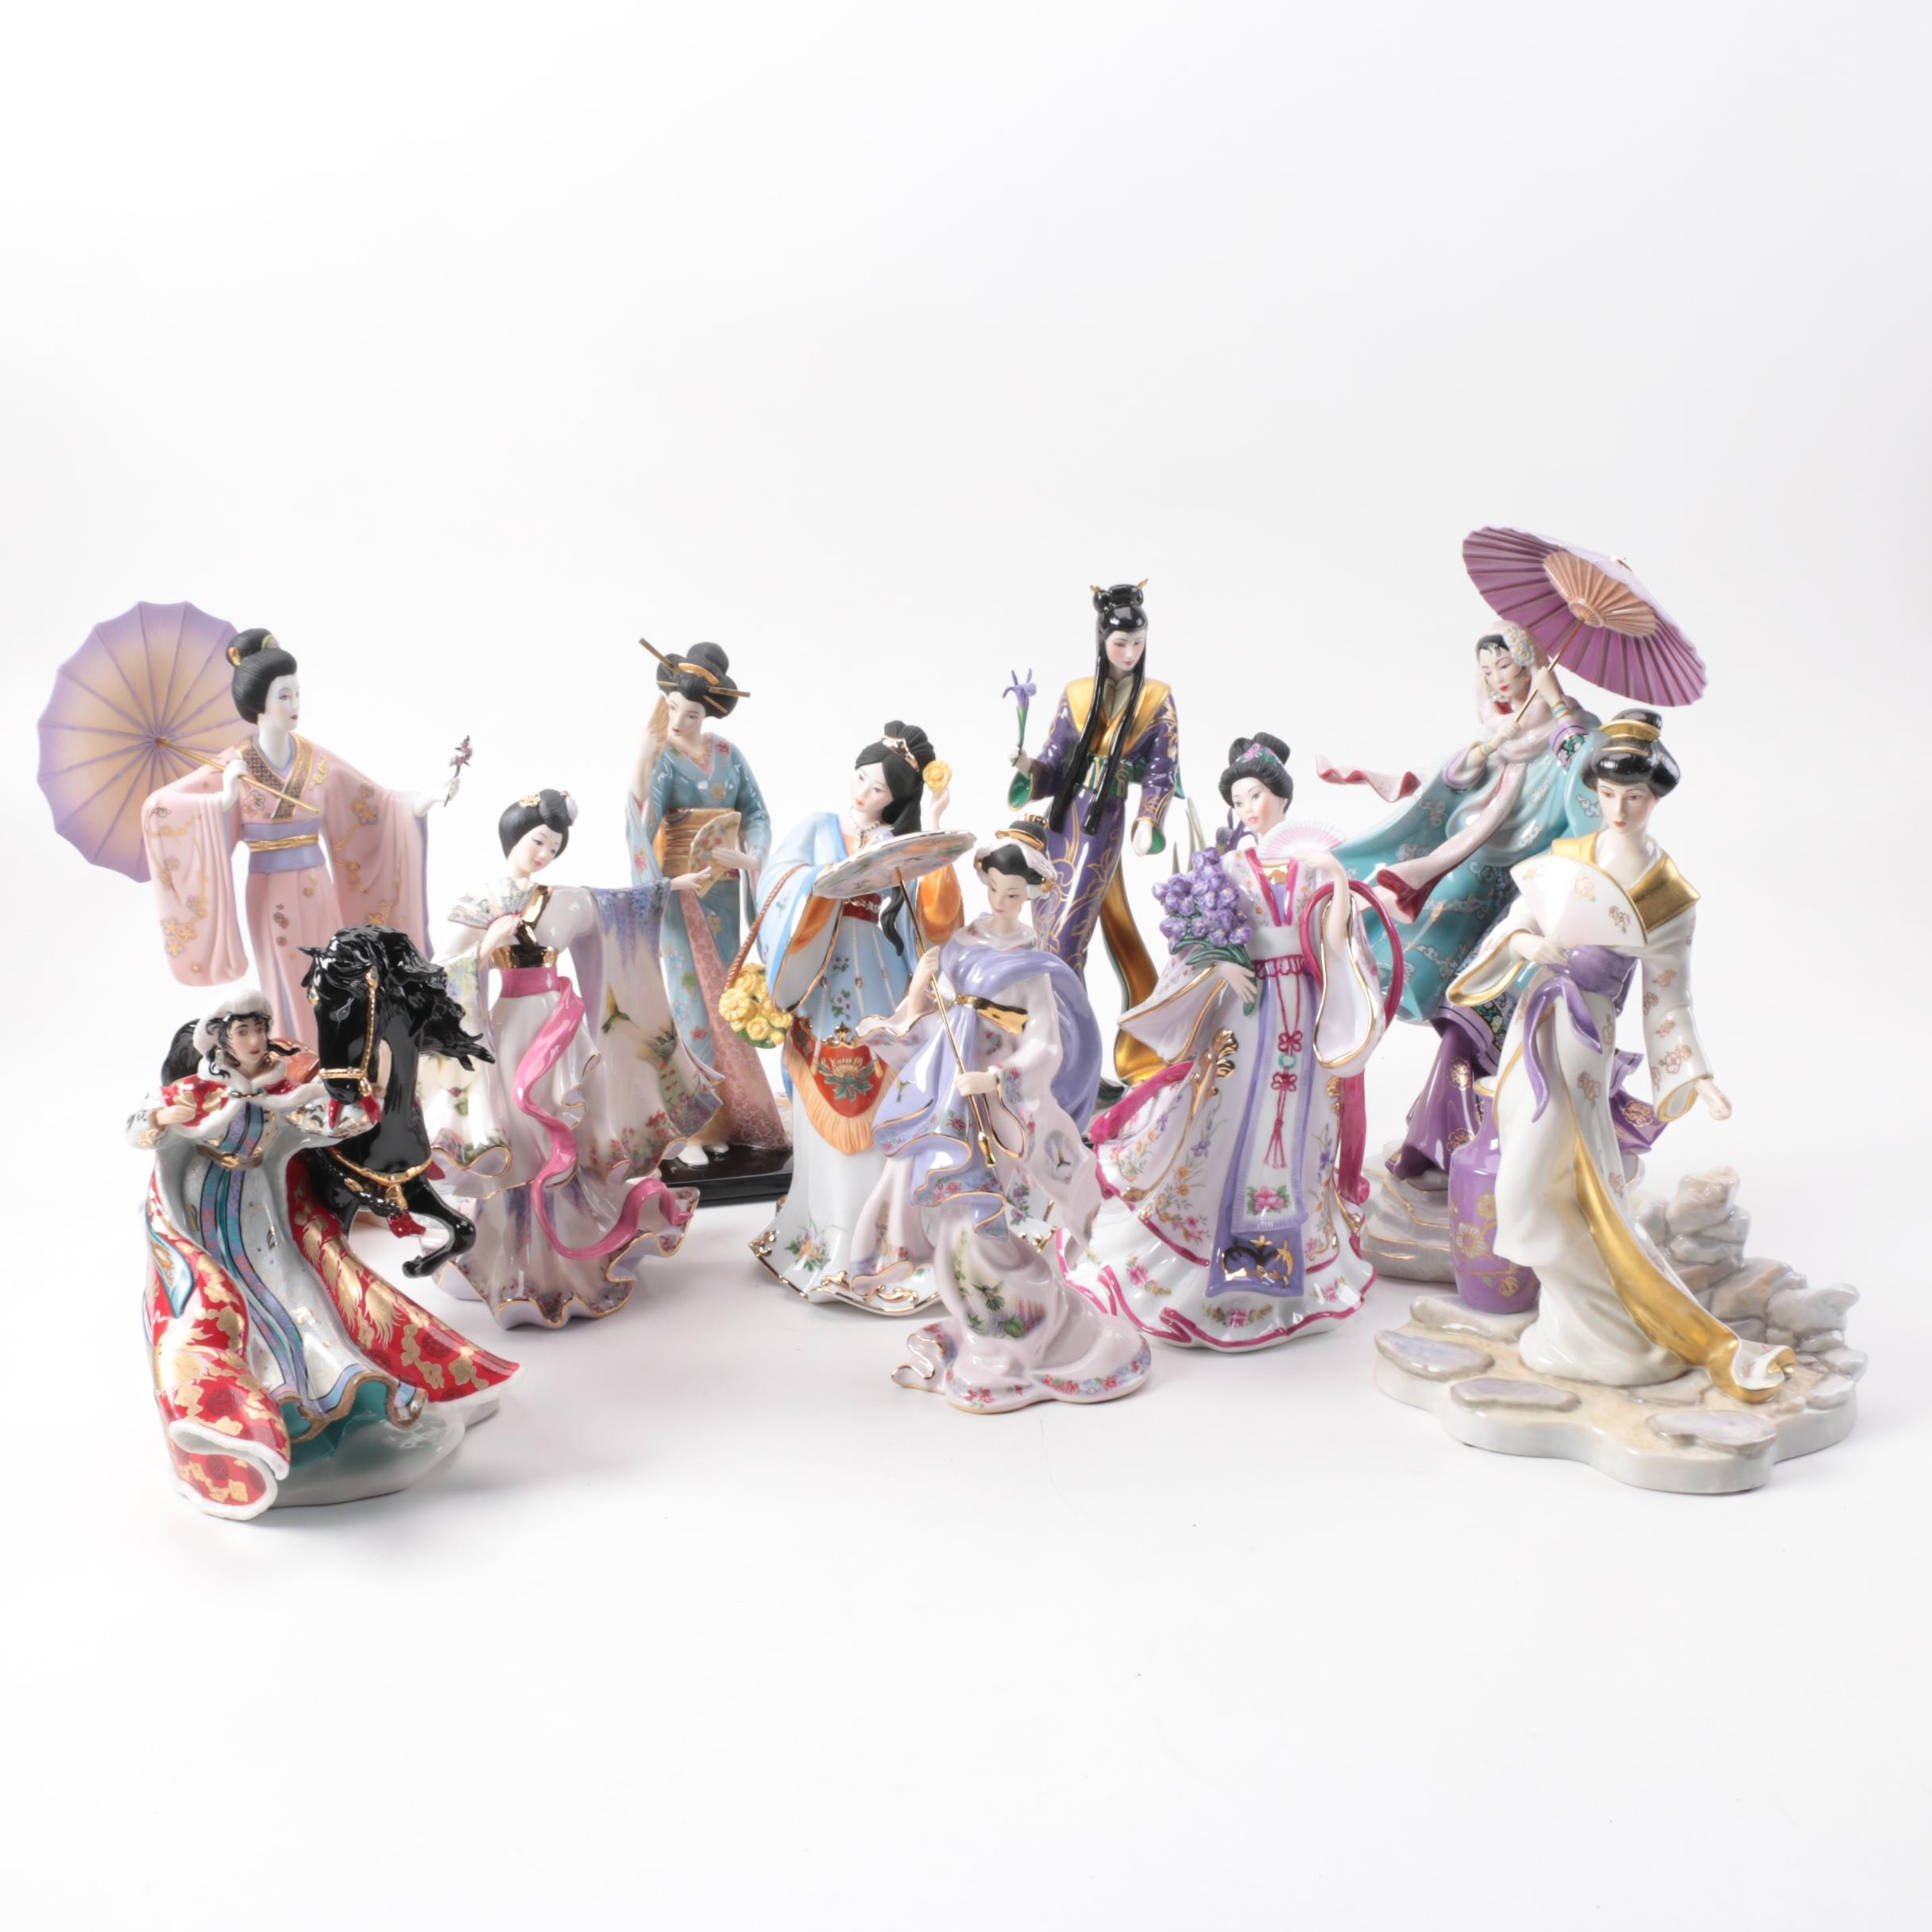 Chinese Inspired Porcelain Figurines including Franklin Mint and Danbury Mint